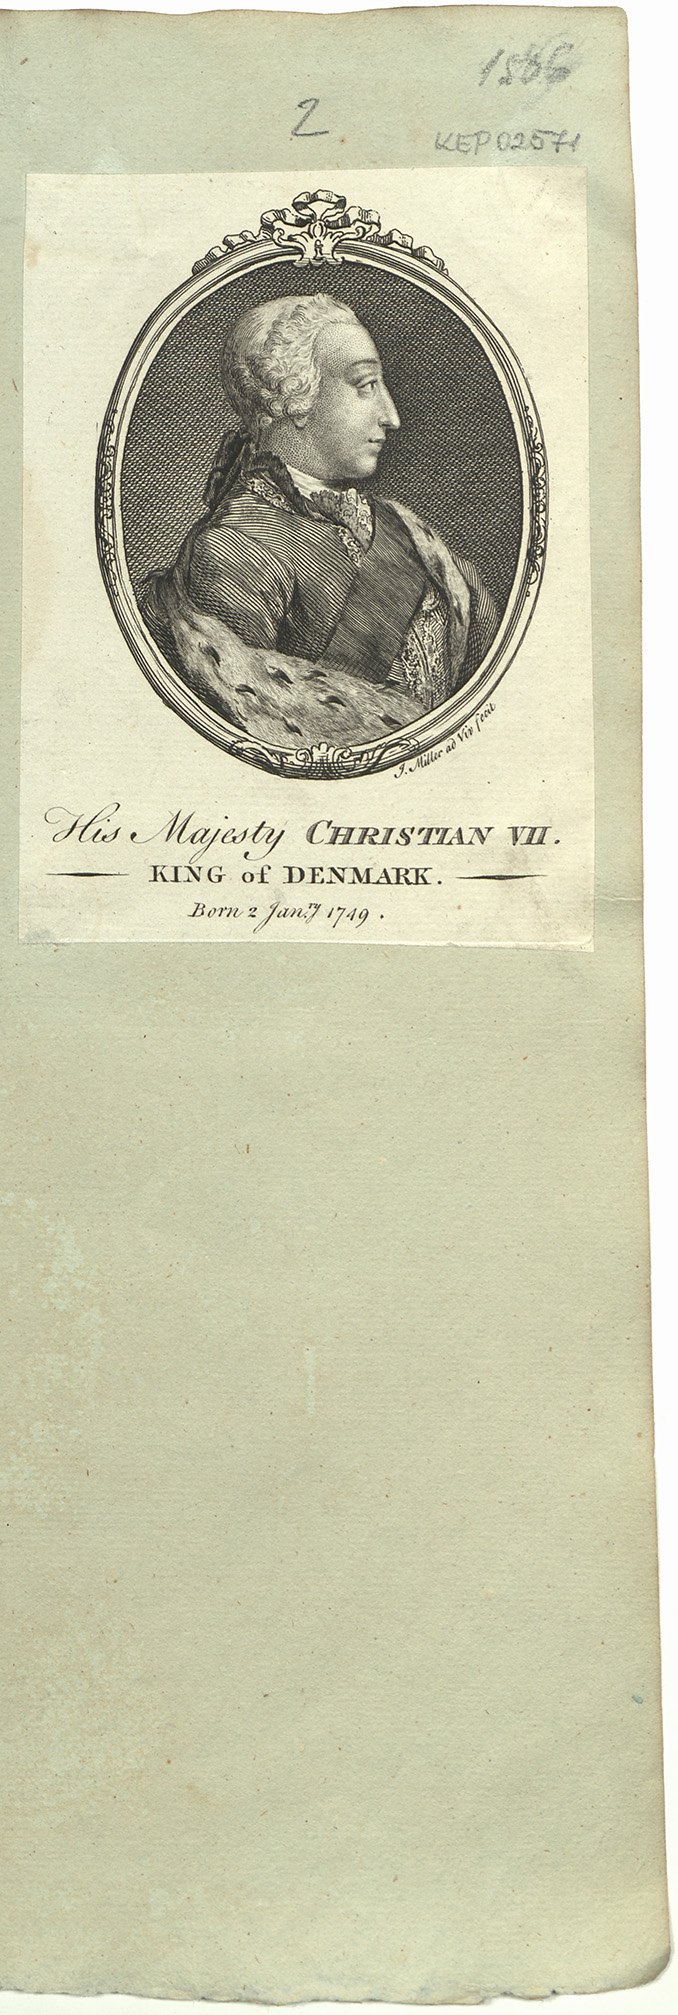 His Majesty Christian VII.